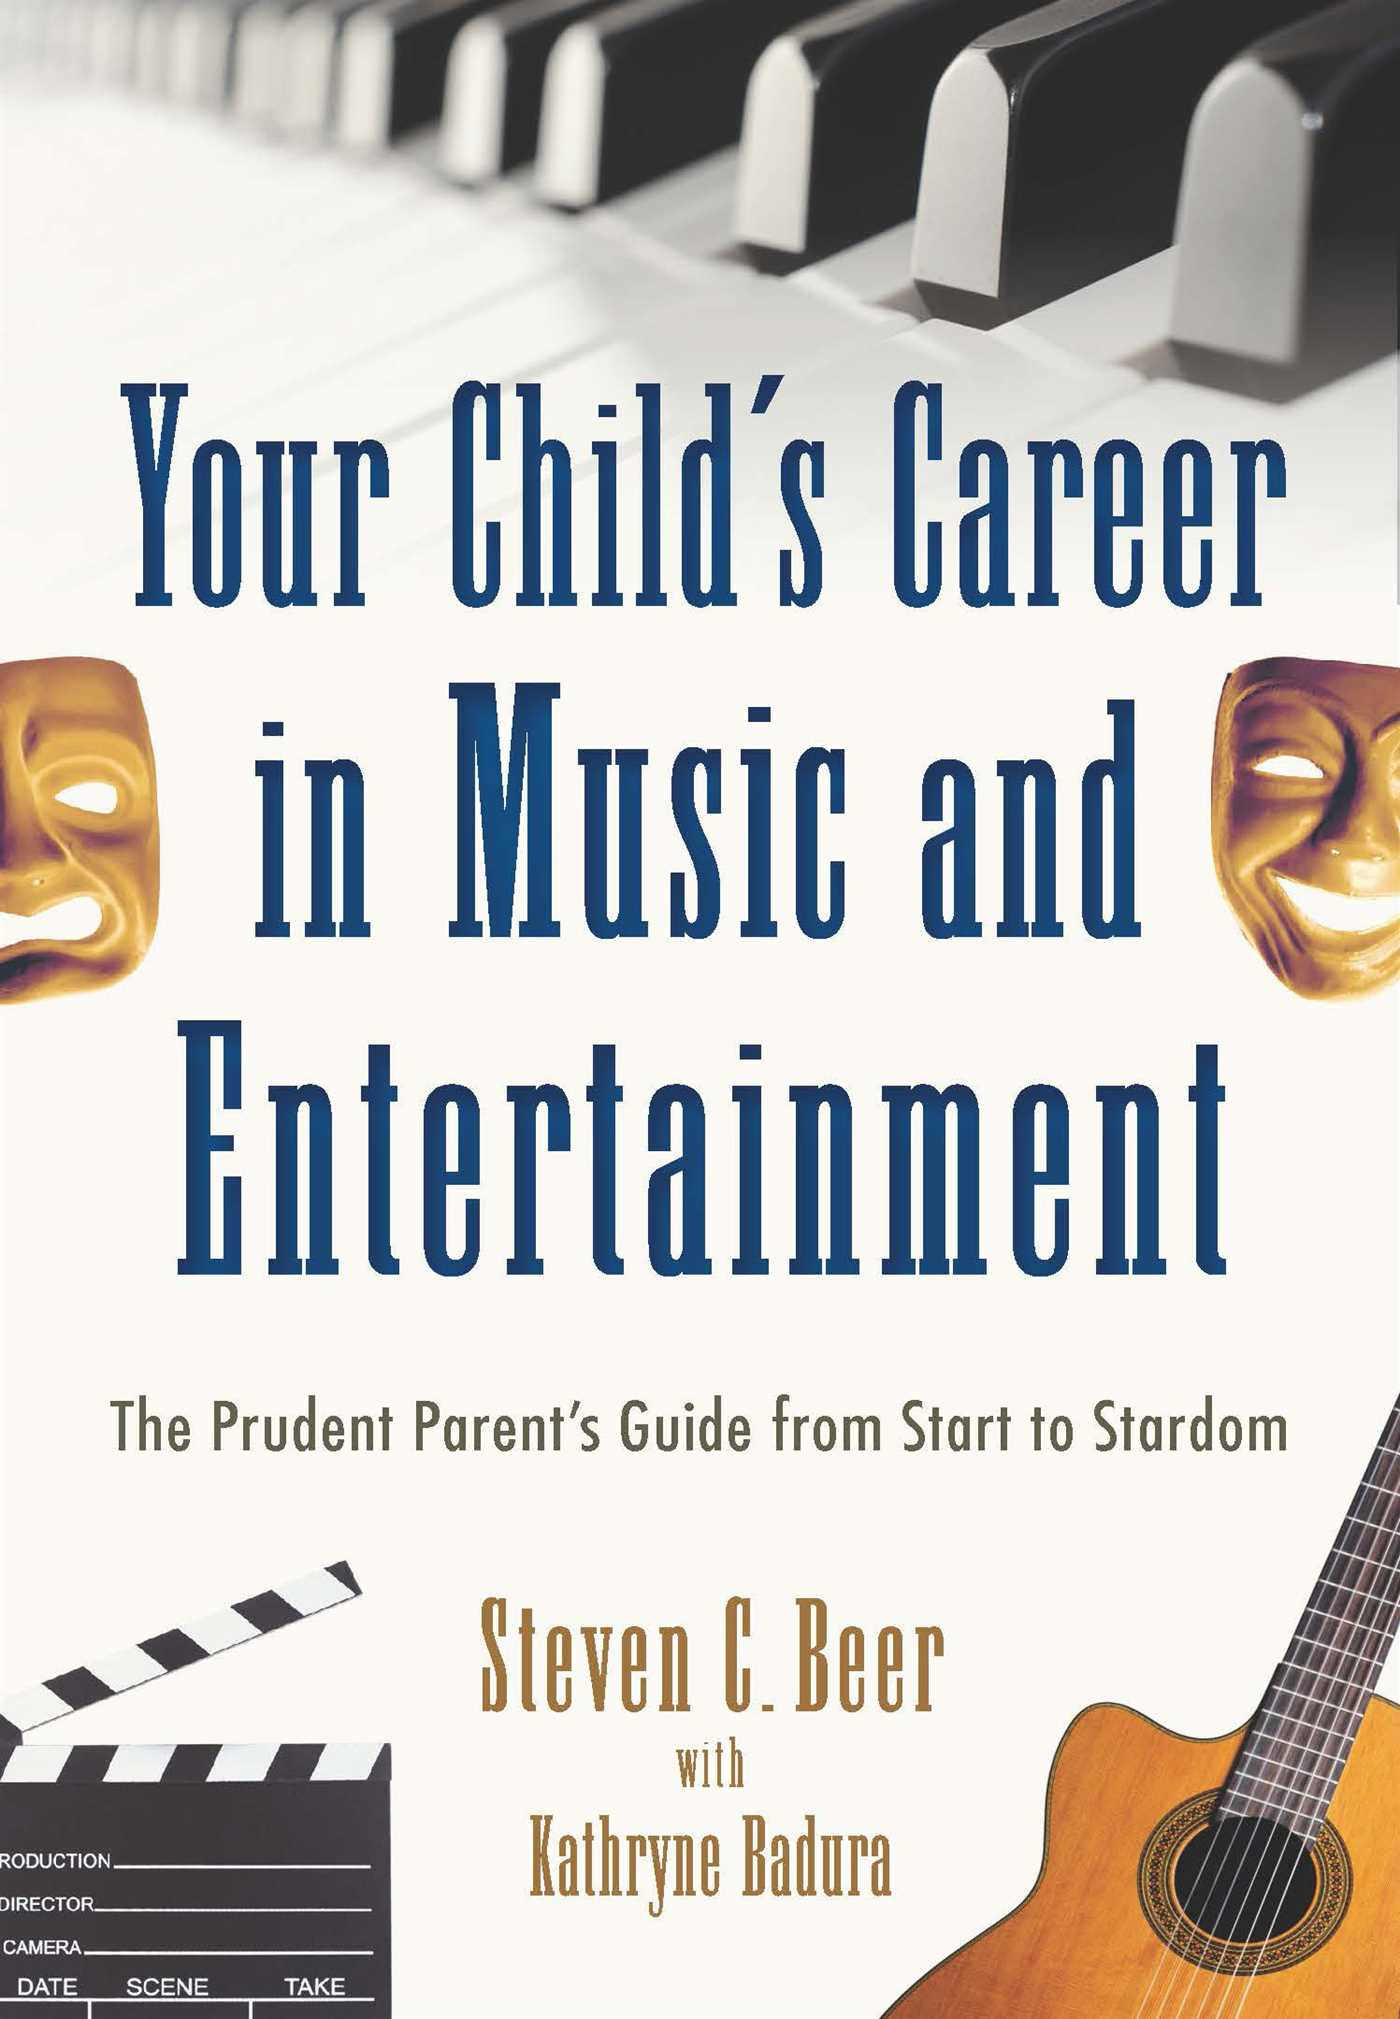 Your Child's Career in Music and Entertainment | Book by Steven C